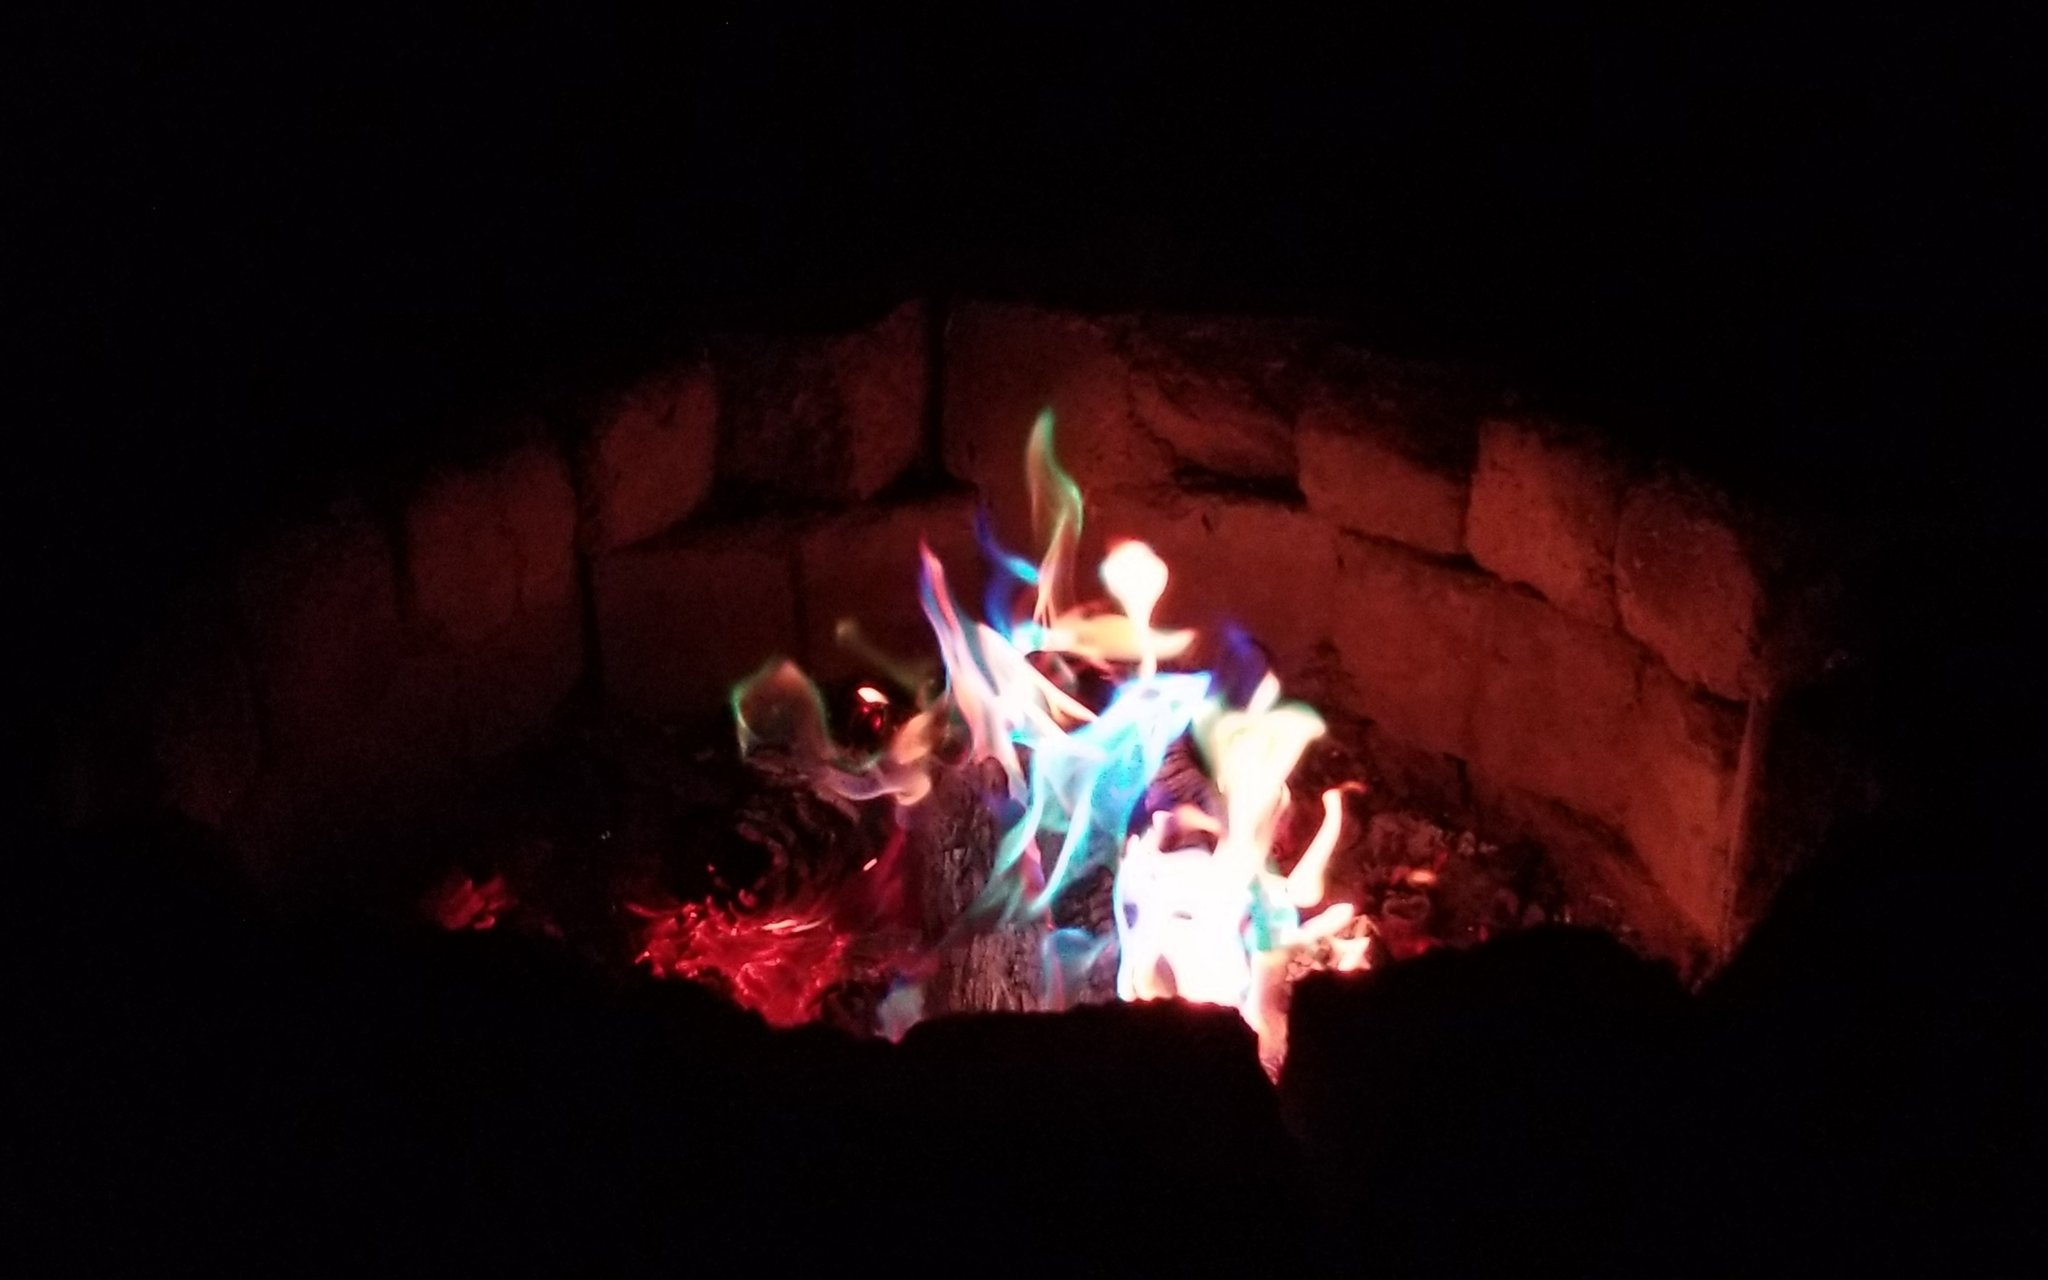 rt-b3ckdotcom-color-changing-fire-oh-my-live-on-https-t-co-4kahbrwf5w-with-r3kluse-cryst4lann-stinkysteph-https-t-co-iveh7e90ob